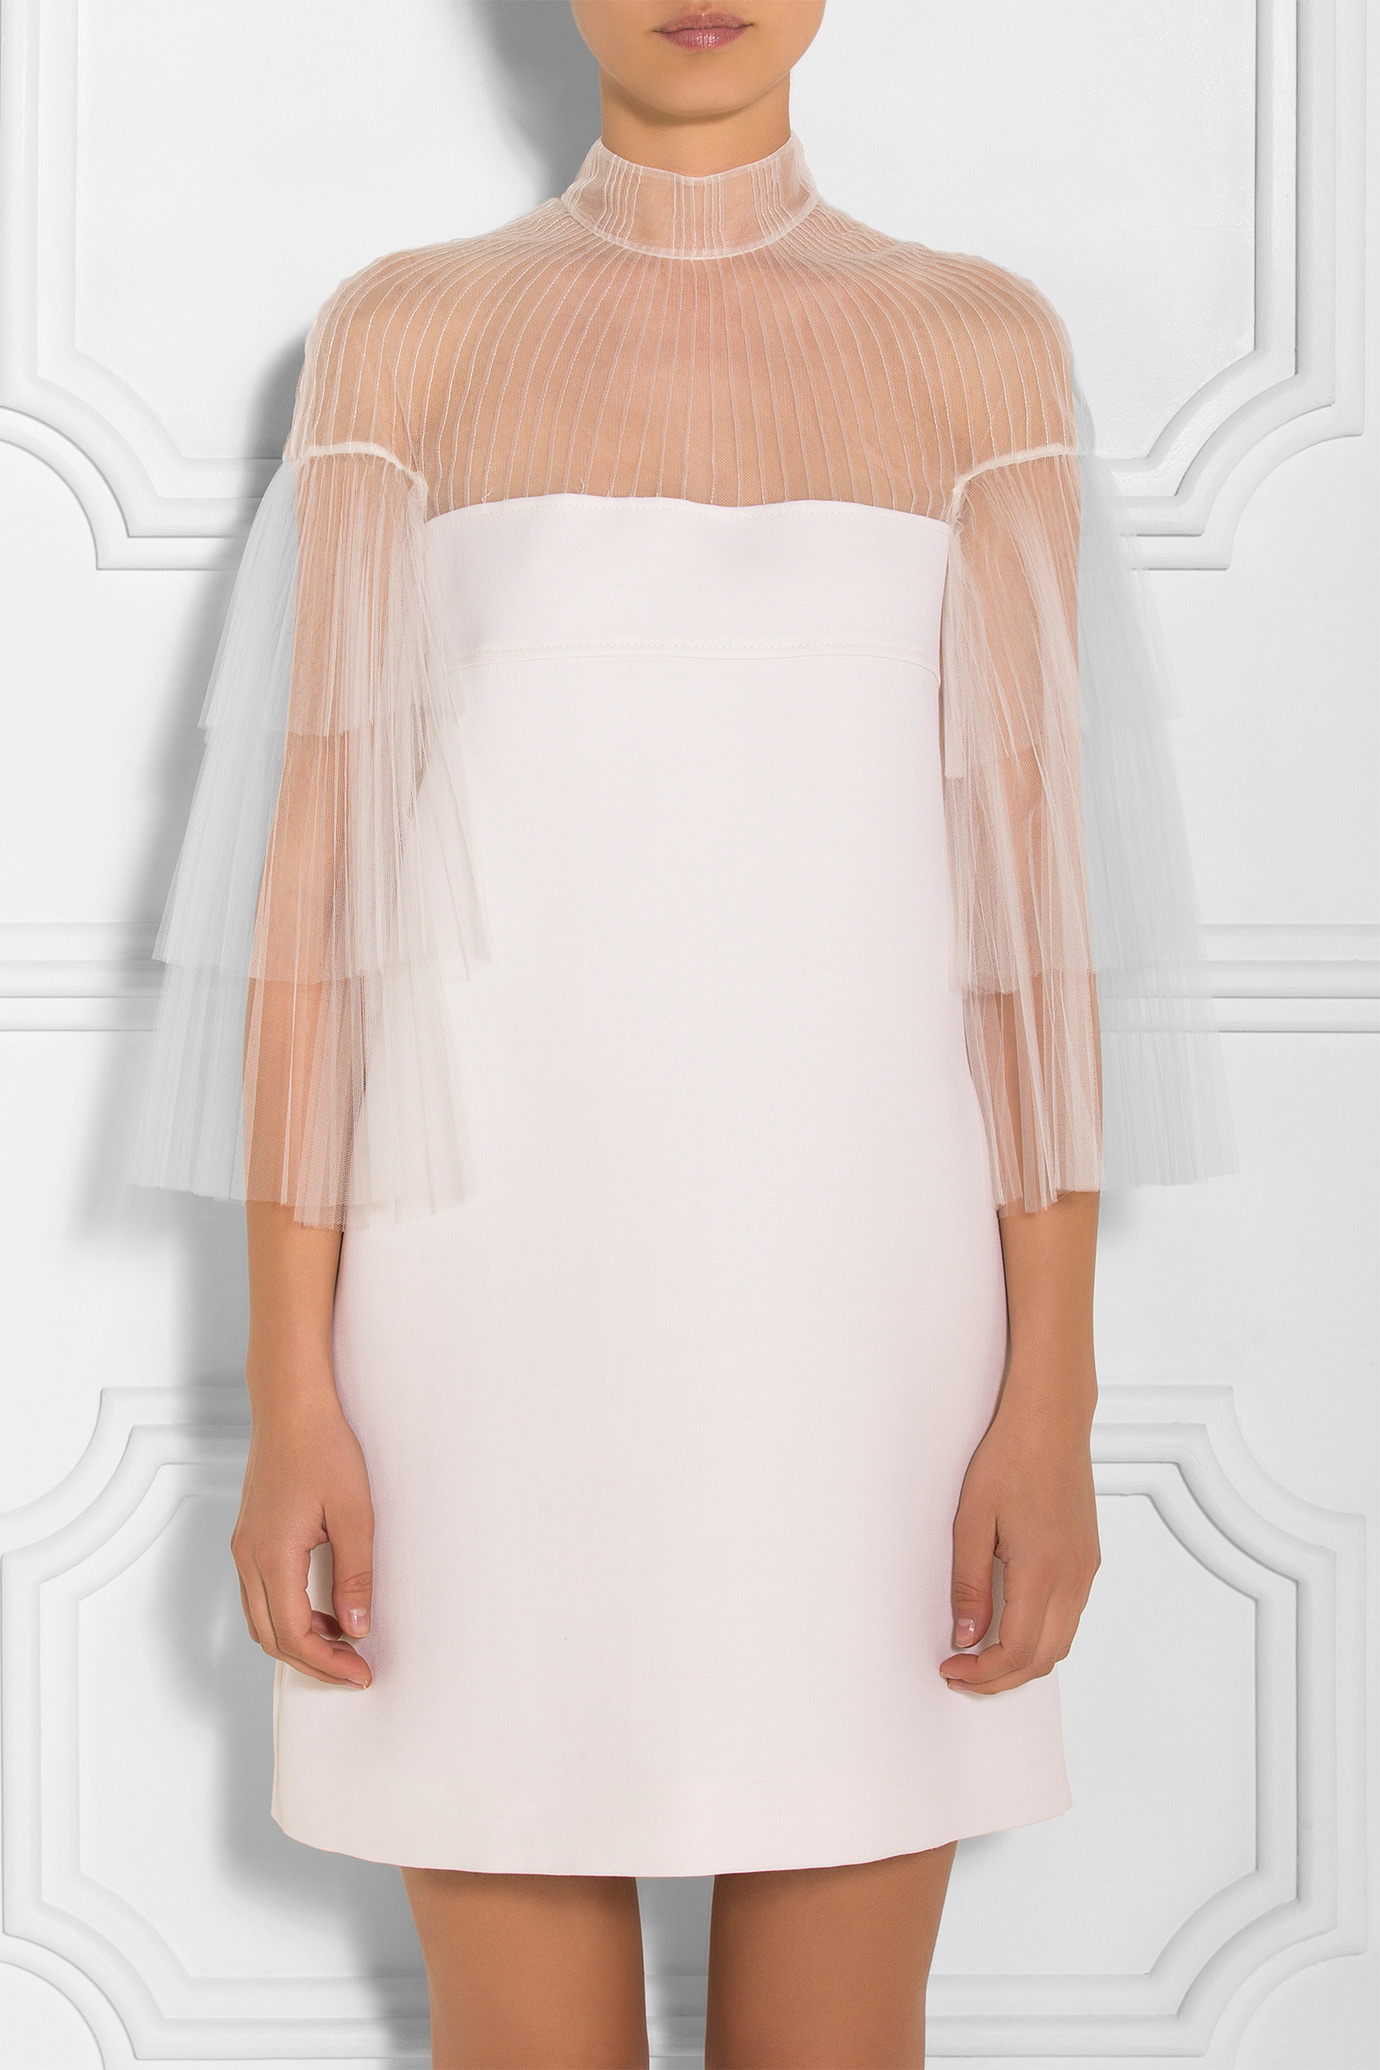 For the true fashion bride, this tulle Valentino mini dress channels the likes of Rihanna and Olivia Palermo. -